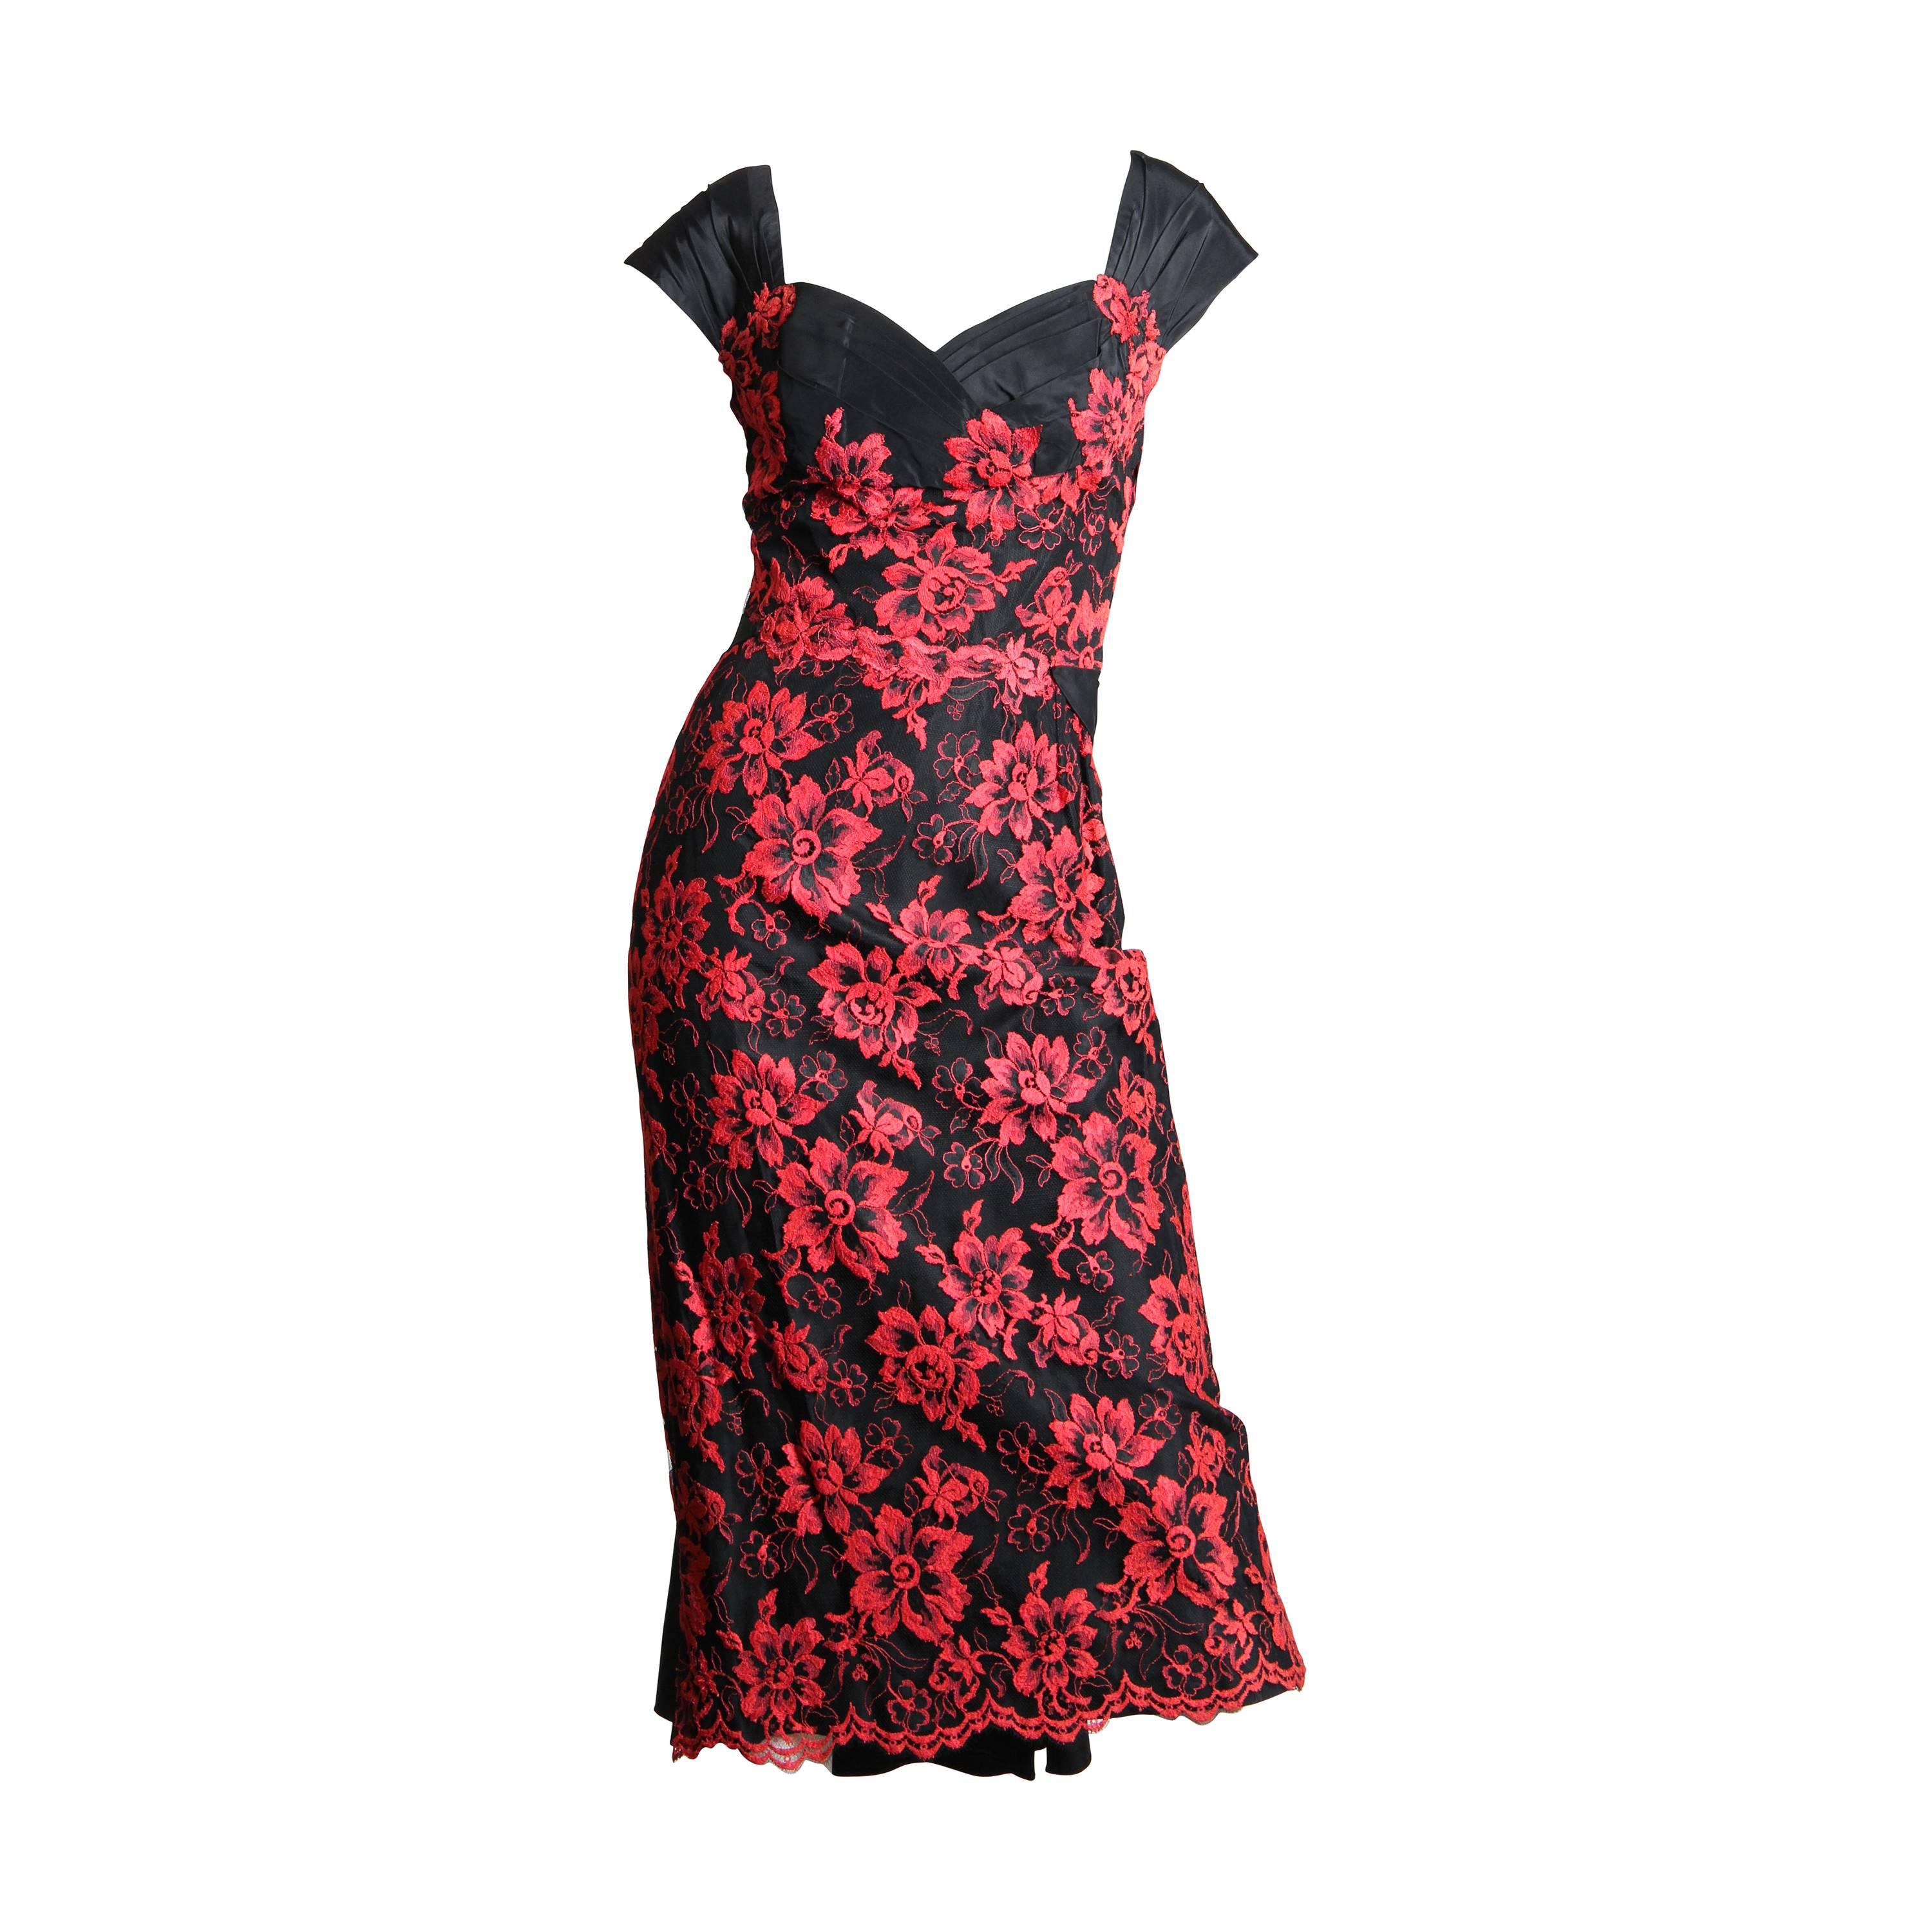 1950S PEGGY HUNT Black & Red Silk Taffeta Chantilly Lace Cocktail Dress